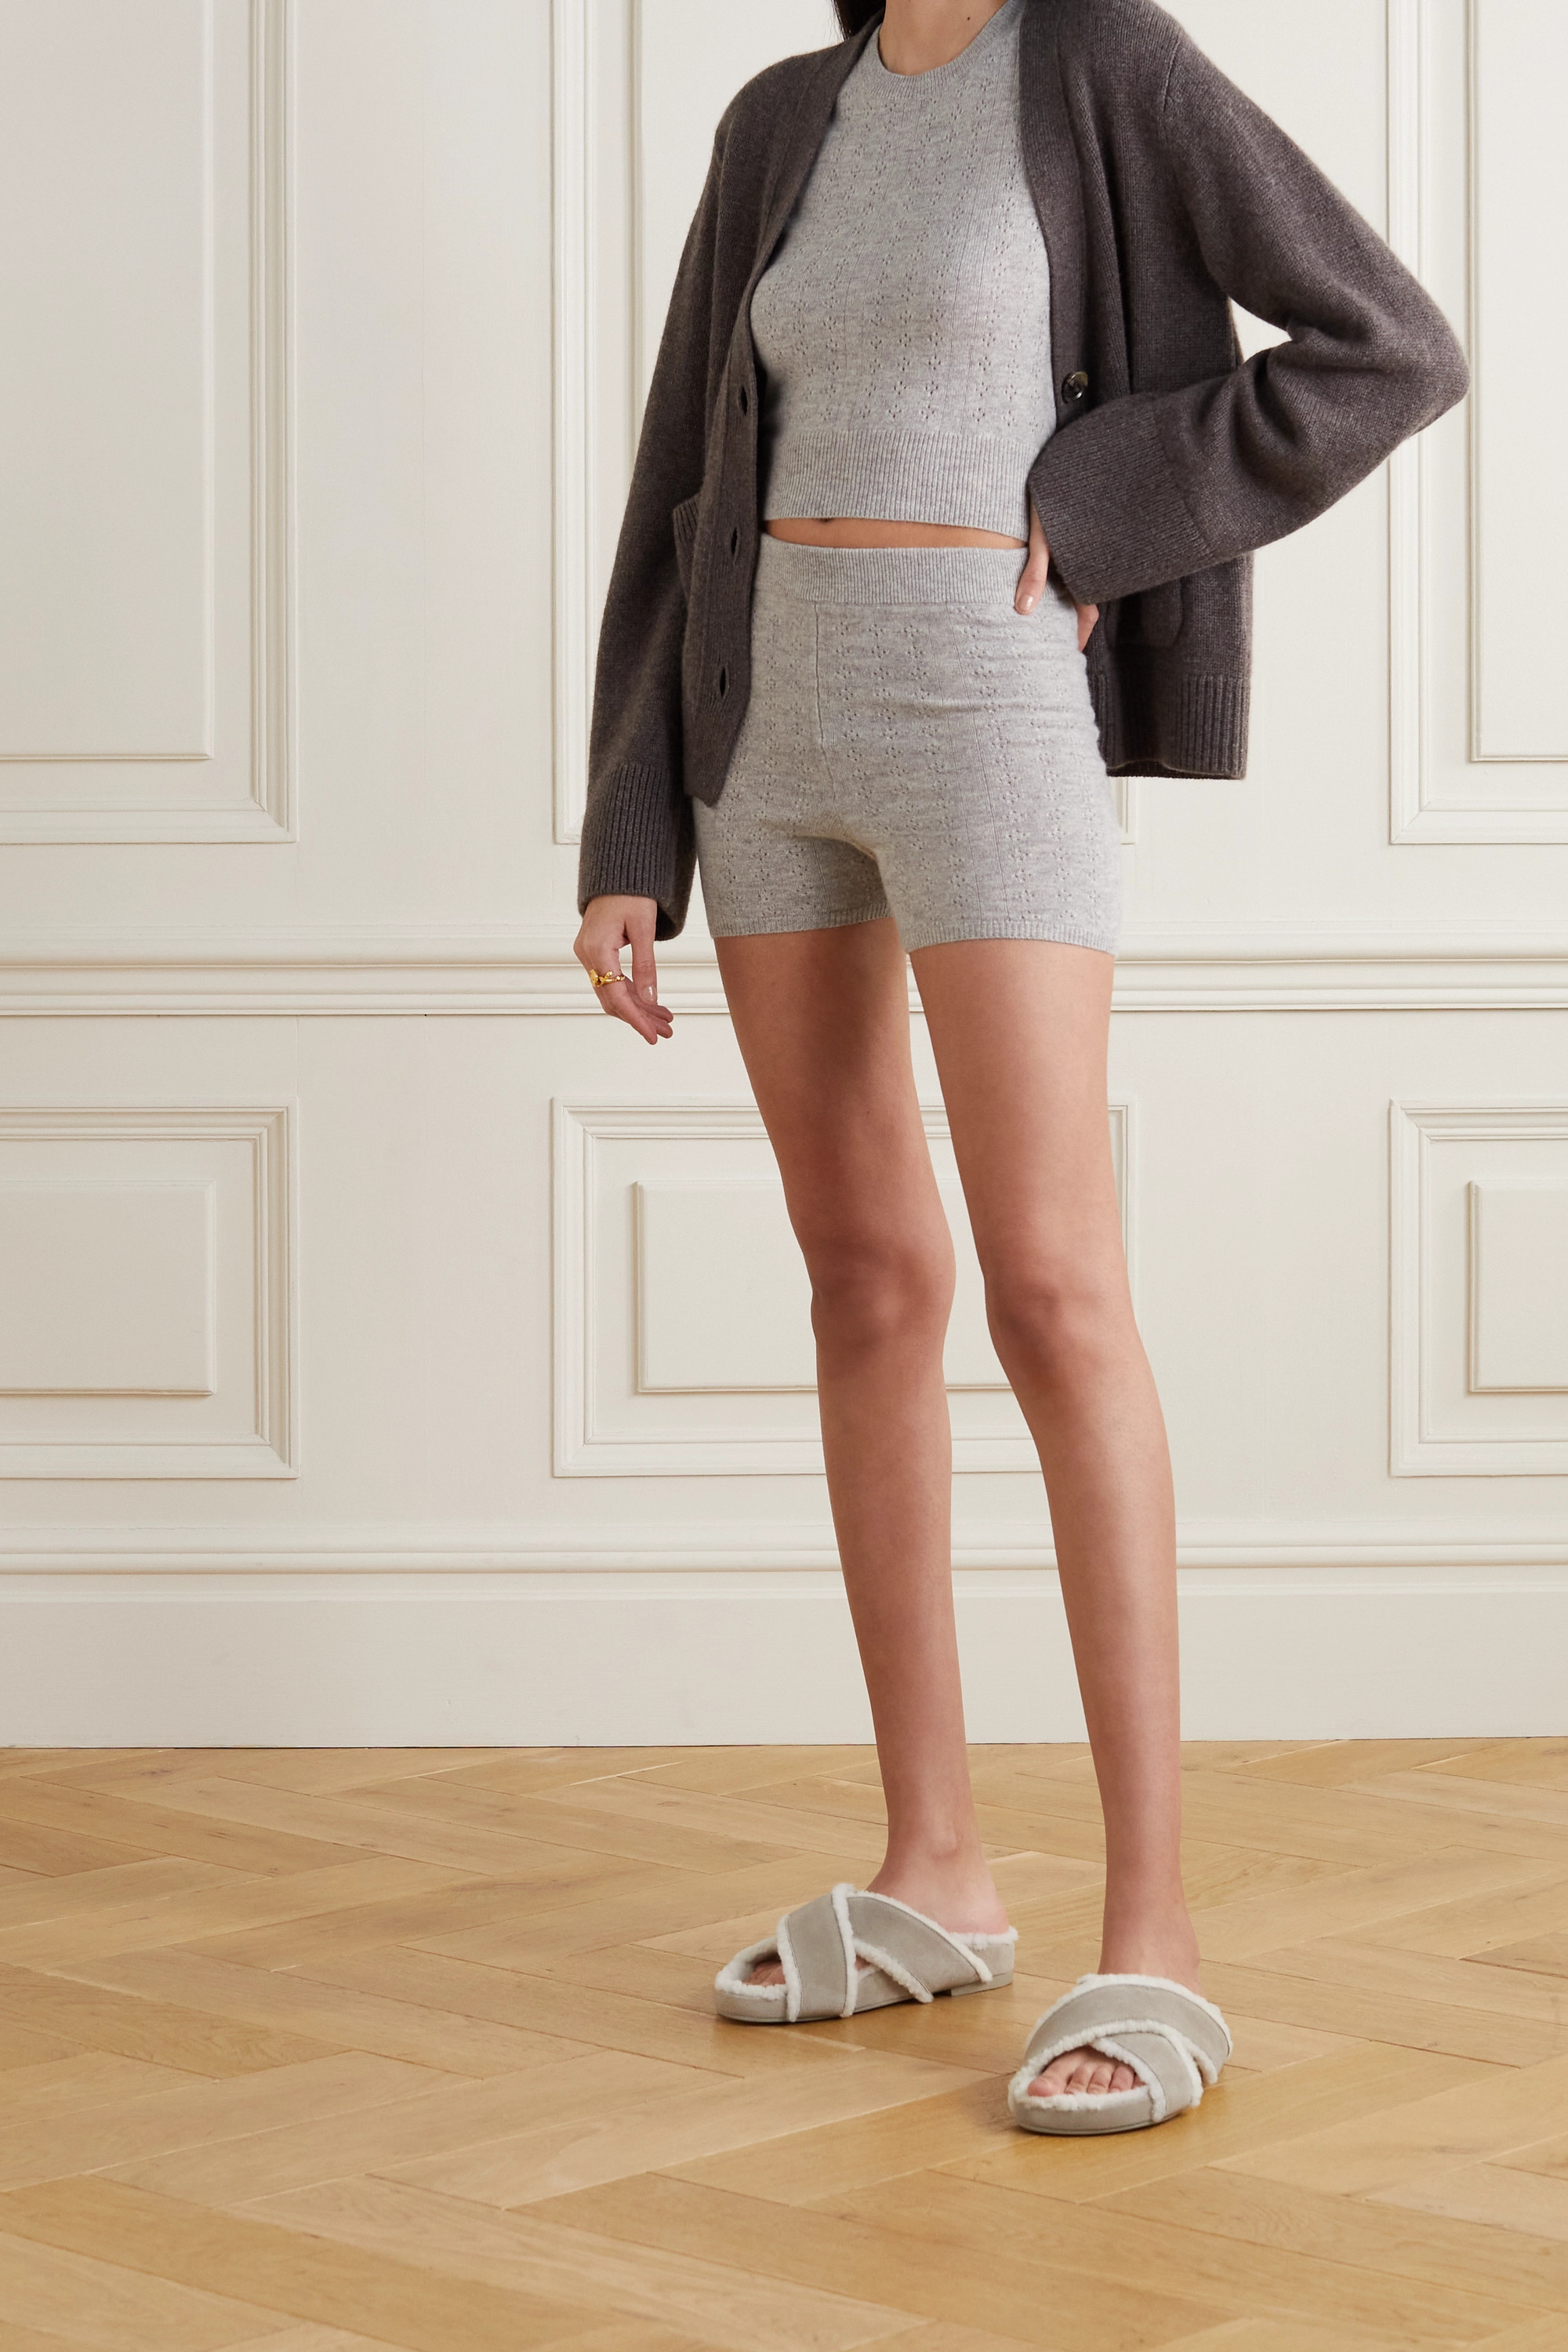 Reformation + NET SUSTAIN Villa recycled cashmere-blend T-shirt and shorts set